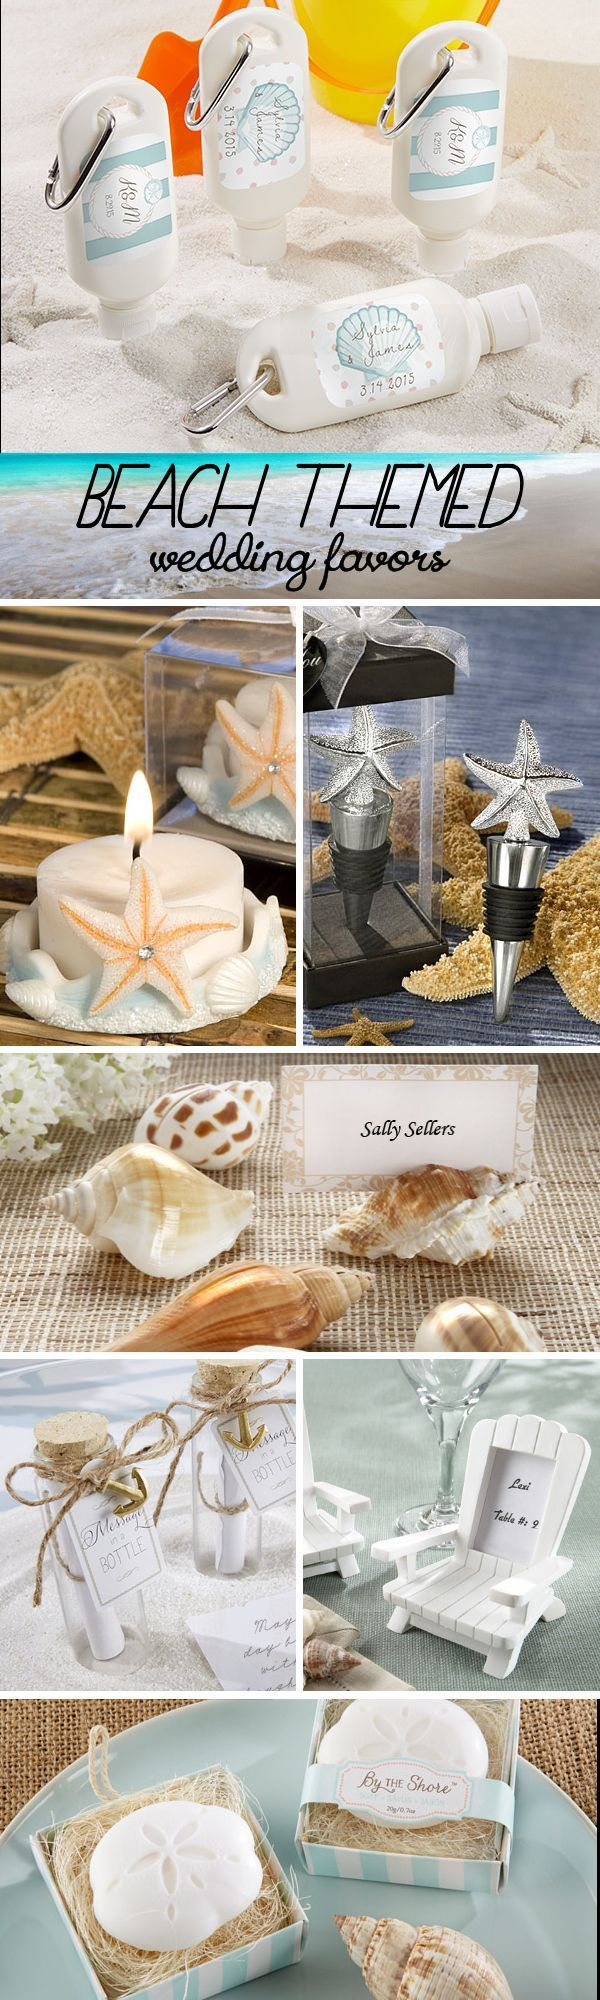 100 Beach Themed Wedding Favors that your guests will love!